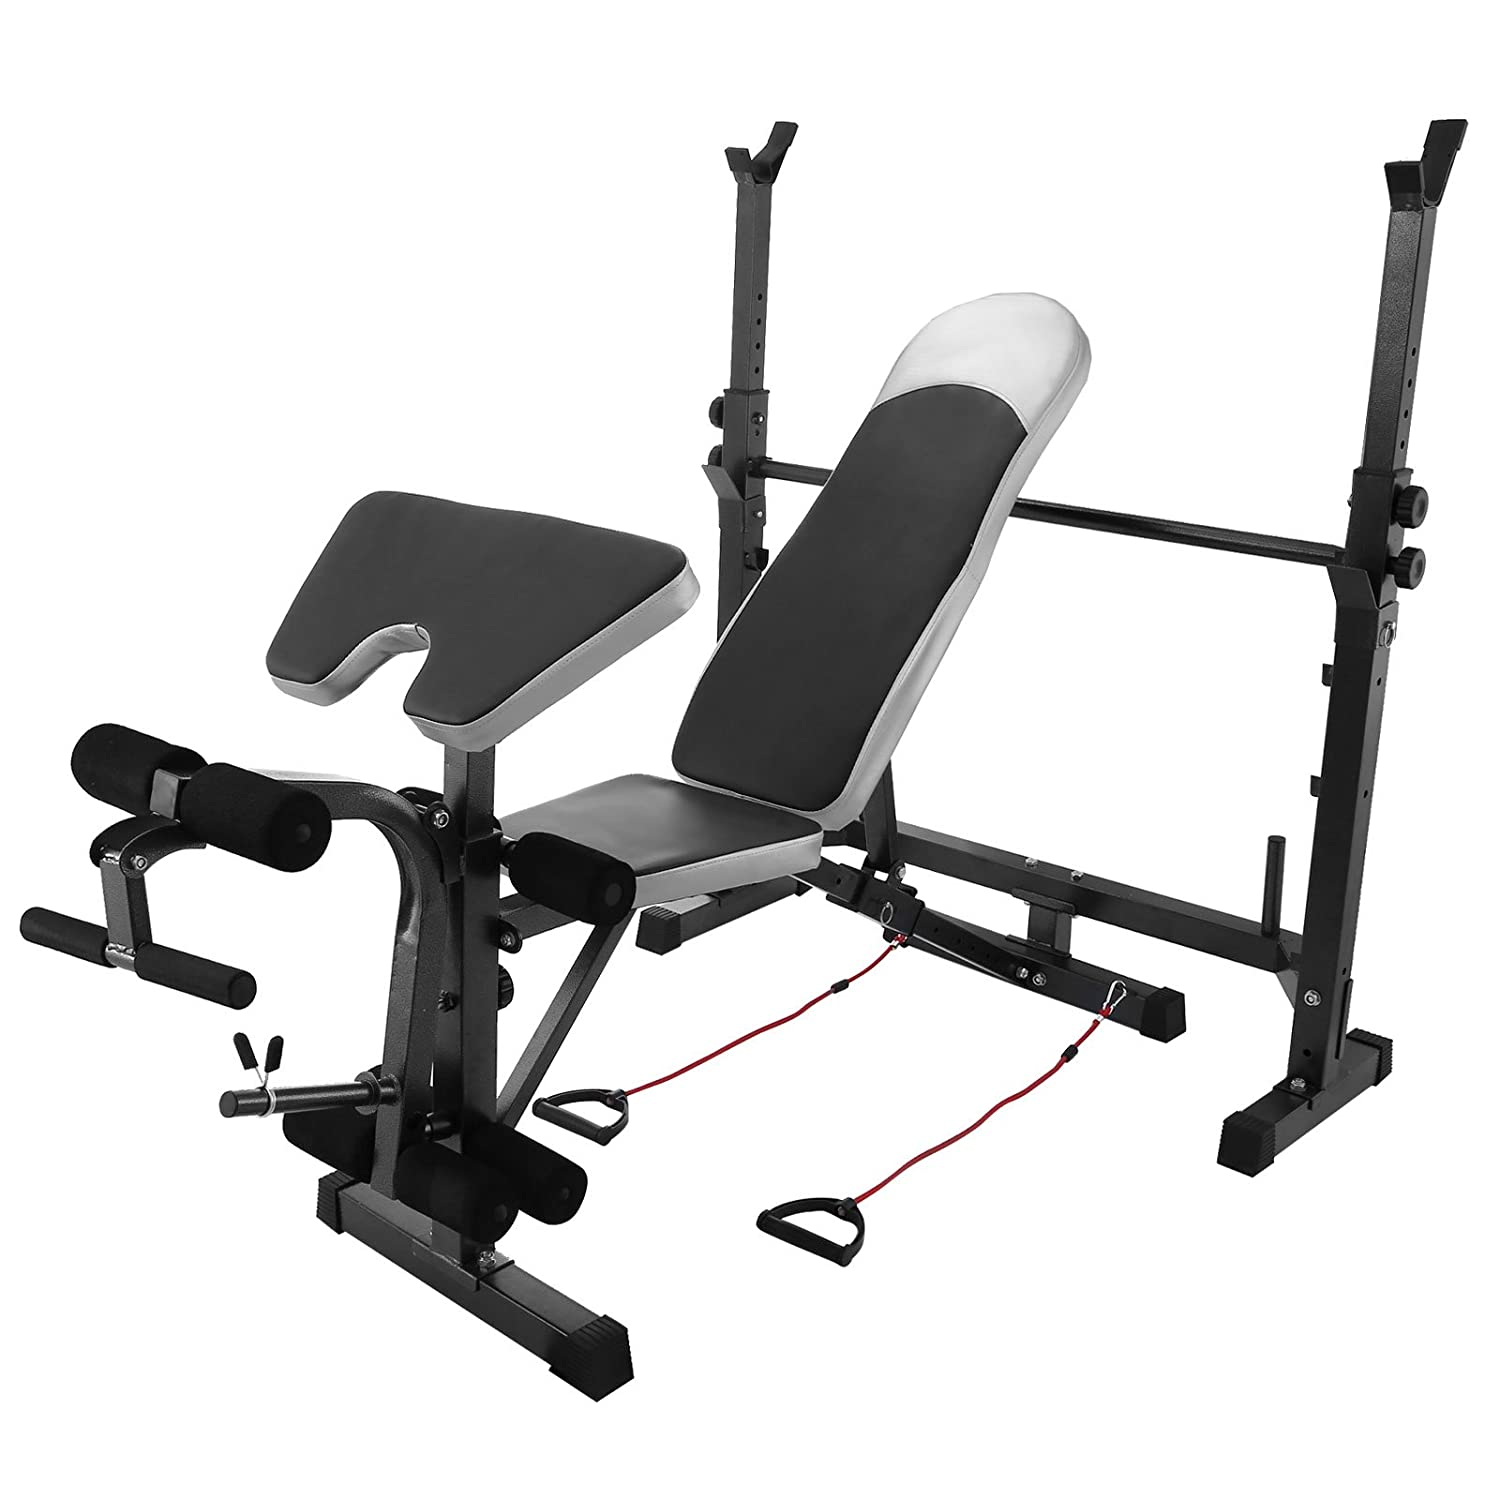 BestEquip Multi-station Weight Bench Adjustable Workout Bench with Leg Extension Incline Flat Decline Sit Up Fitness Equipment for Gym or Home Exercise